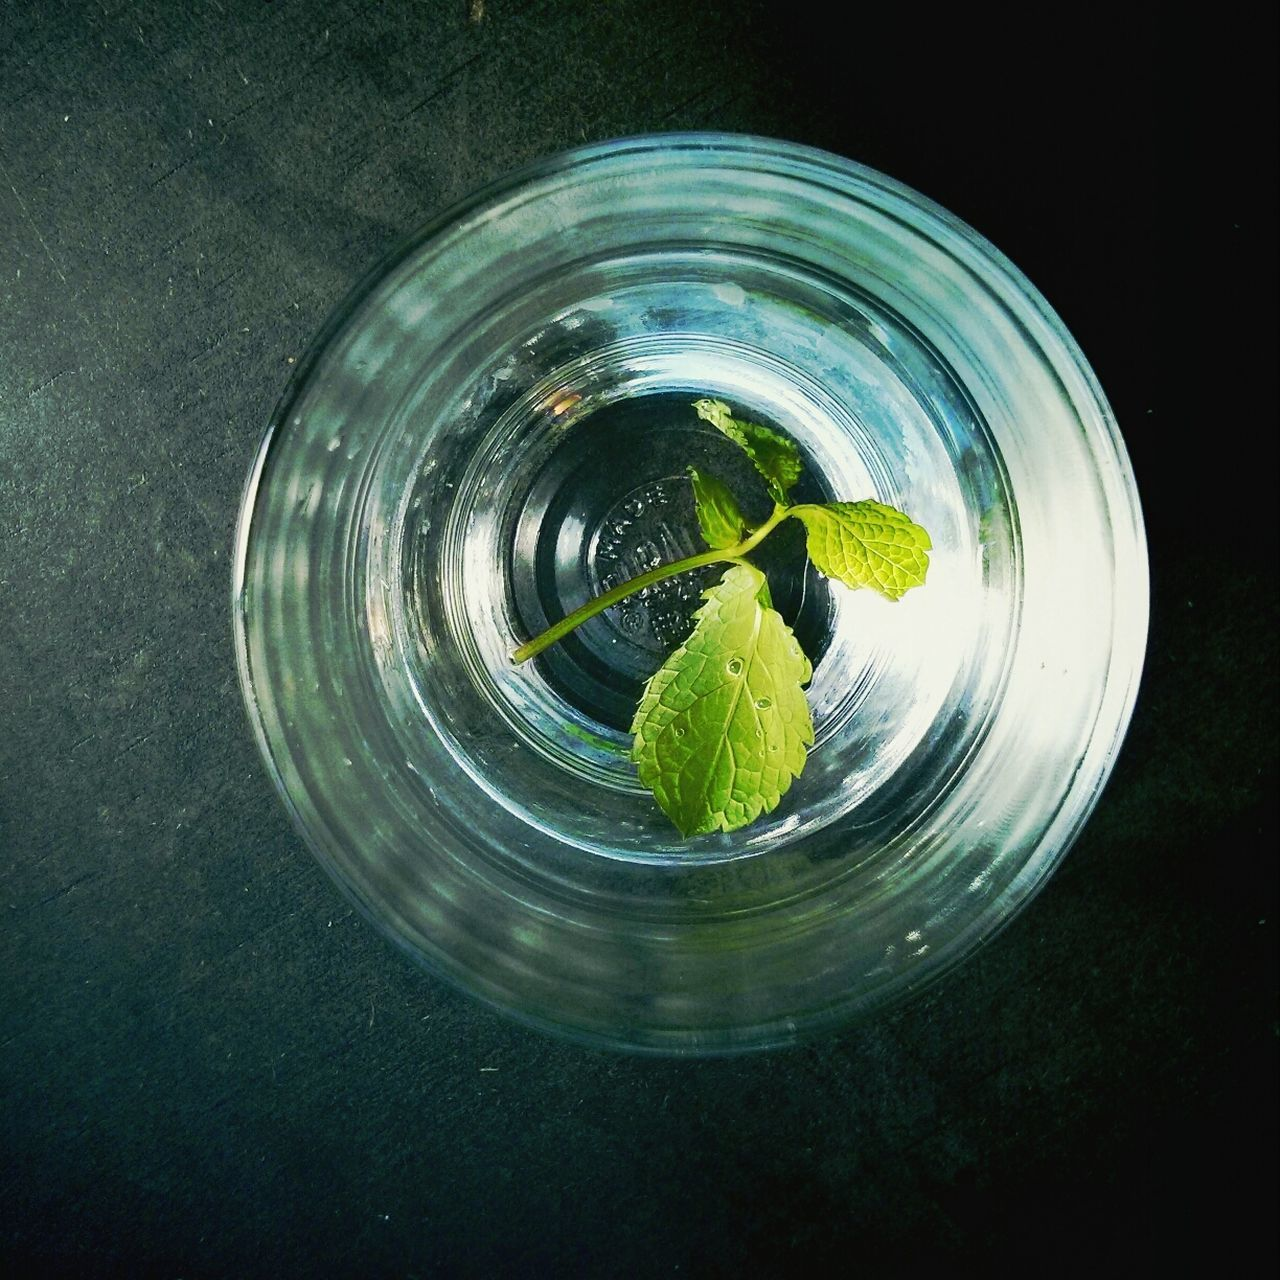 Close-Up Of Mint Leaf With Glass Of Water